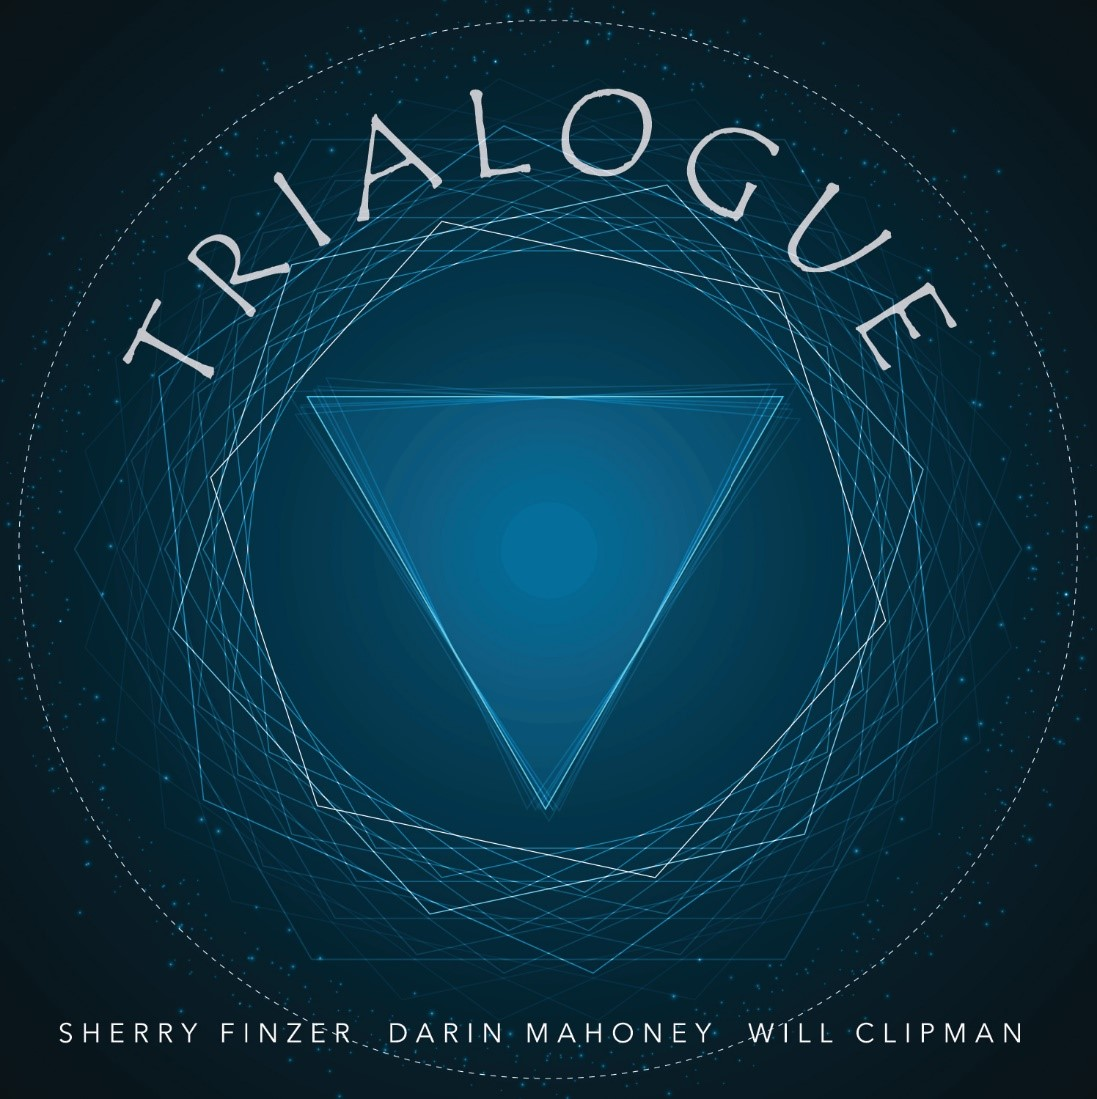 Trialogue by Sherry Finzer, Darin Mahoney & Will Clipman